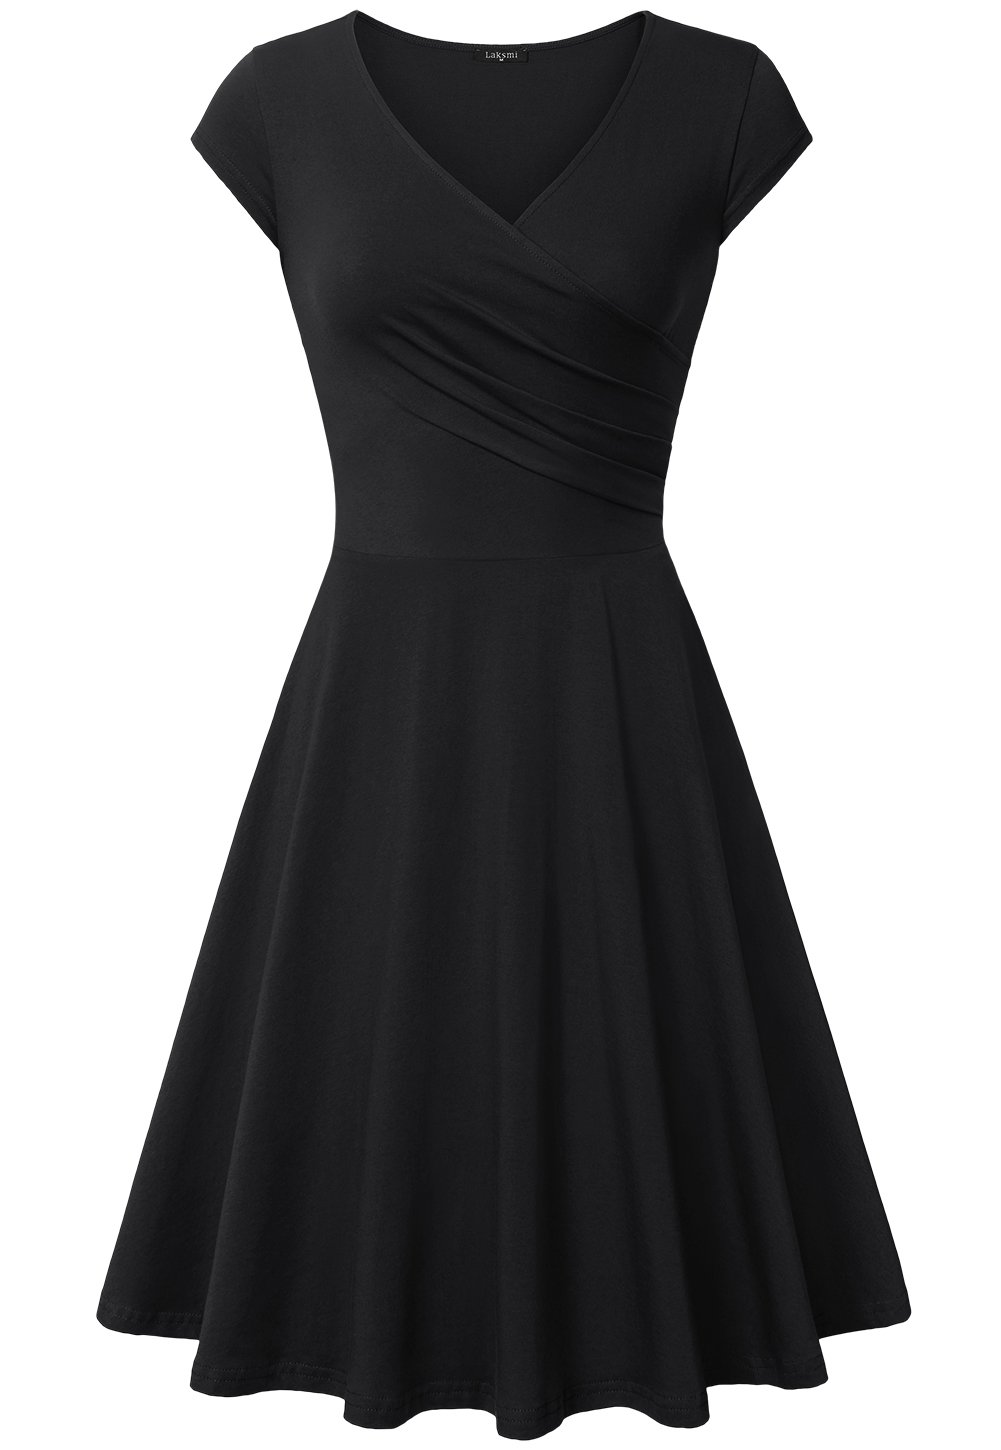 Laksmi Graduation Dress, Women Sexy Cocktail Vintage Business Affordable Dress,Large All Black